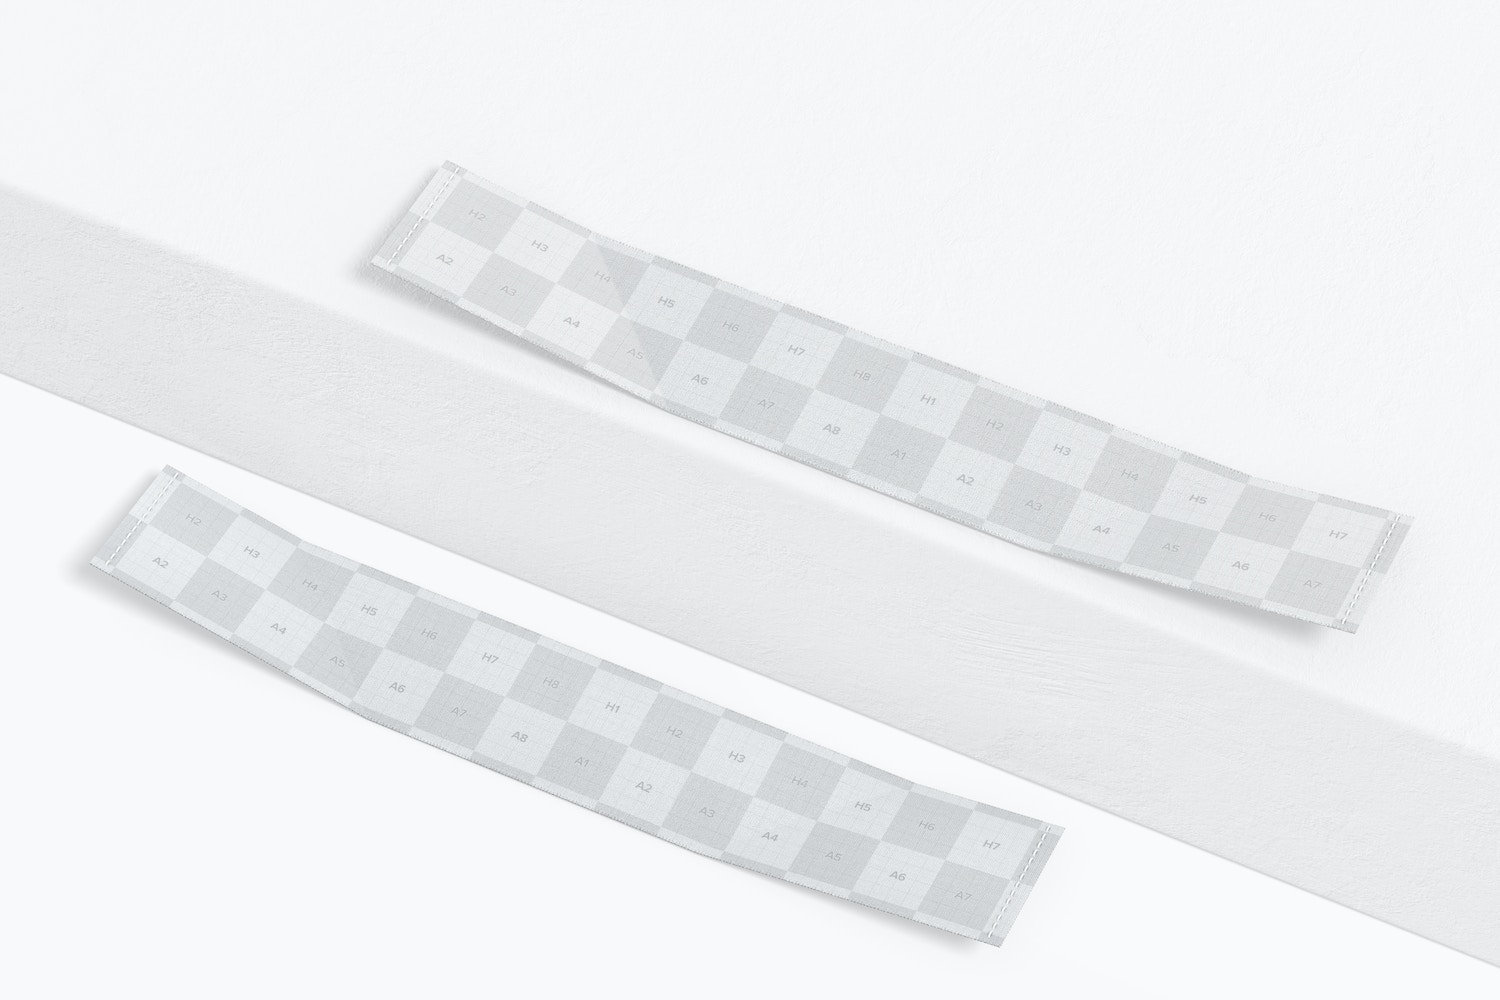 Sewn-In Labels on Surface Mockup